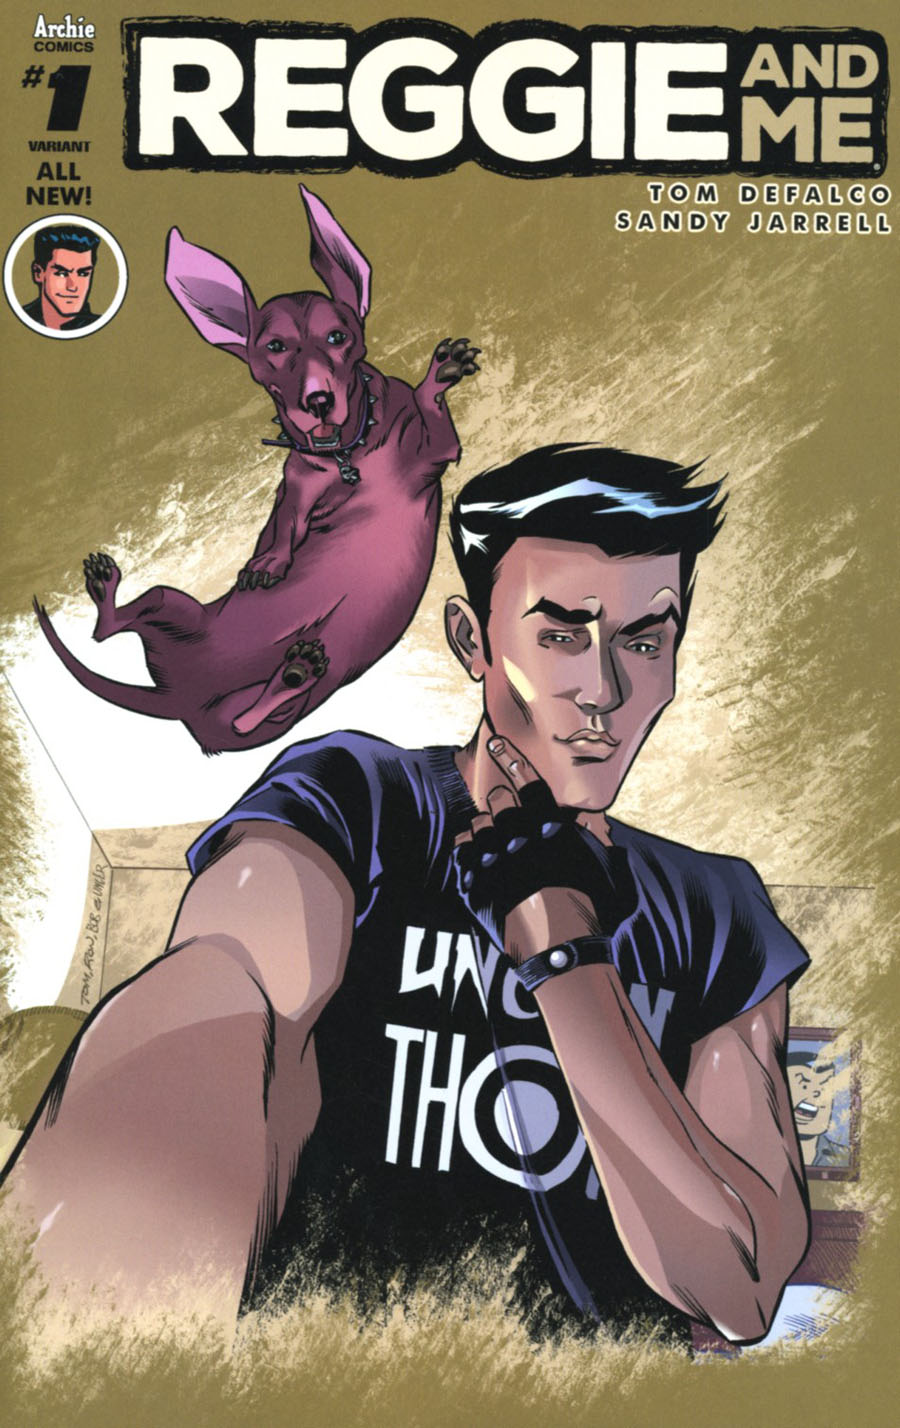 Reggie And Me Vol 2 #1 Cover D Variant Ron Frenz Cover